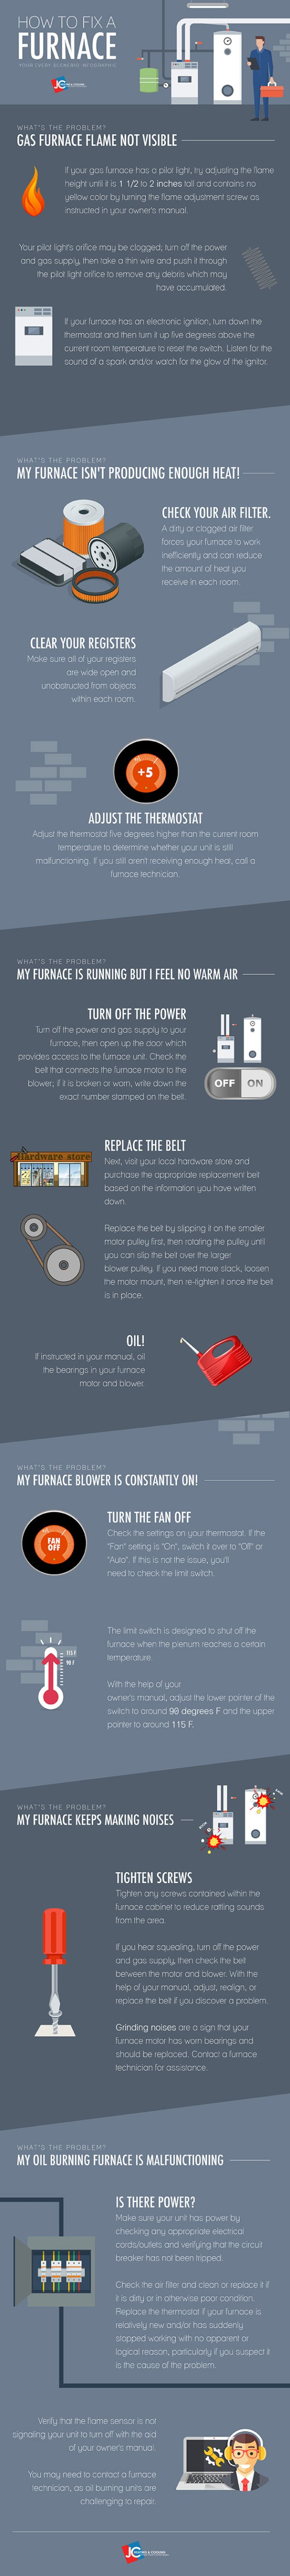 how-to-fix-a-furnace-infographic-2017